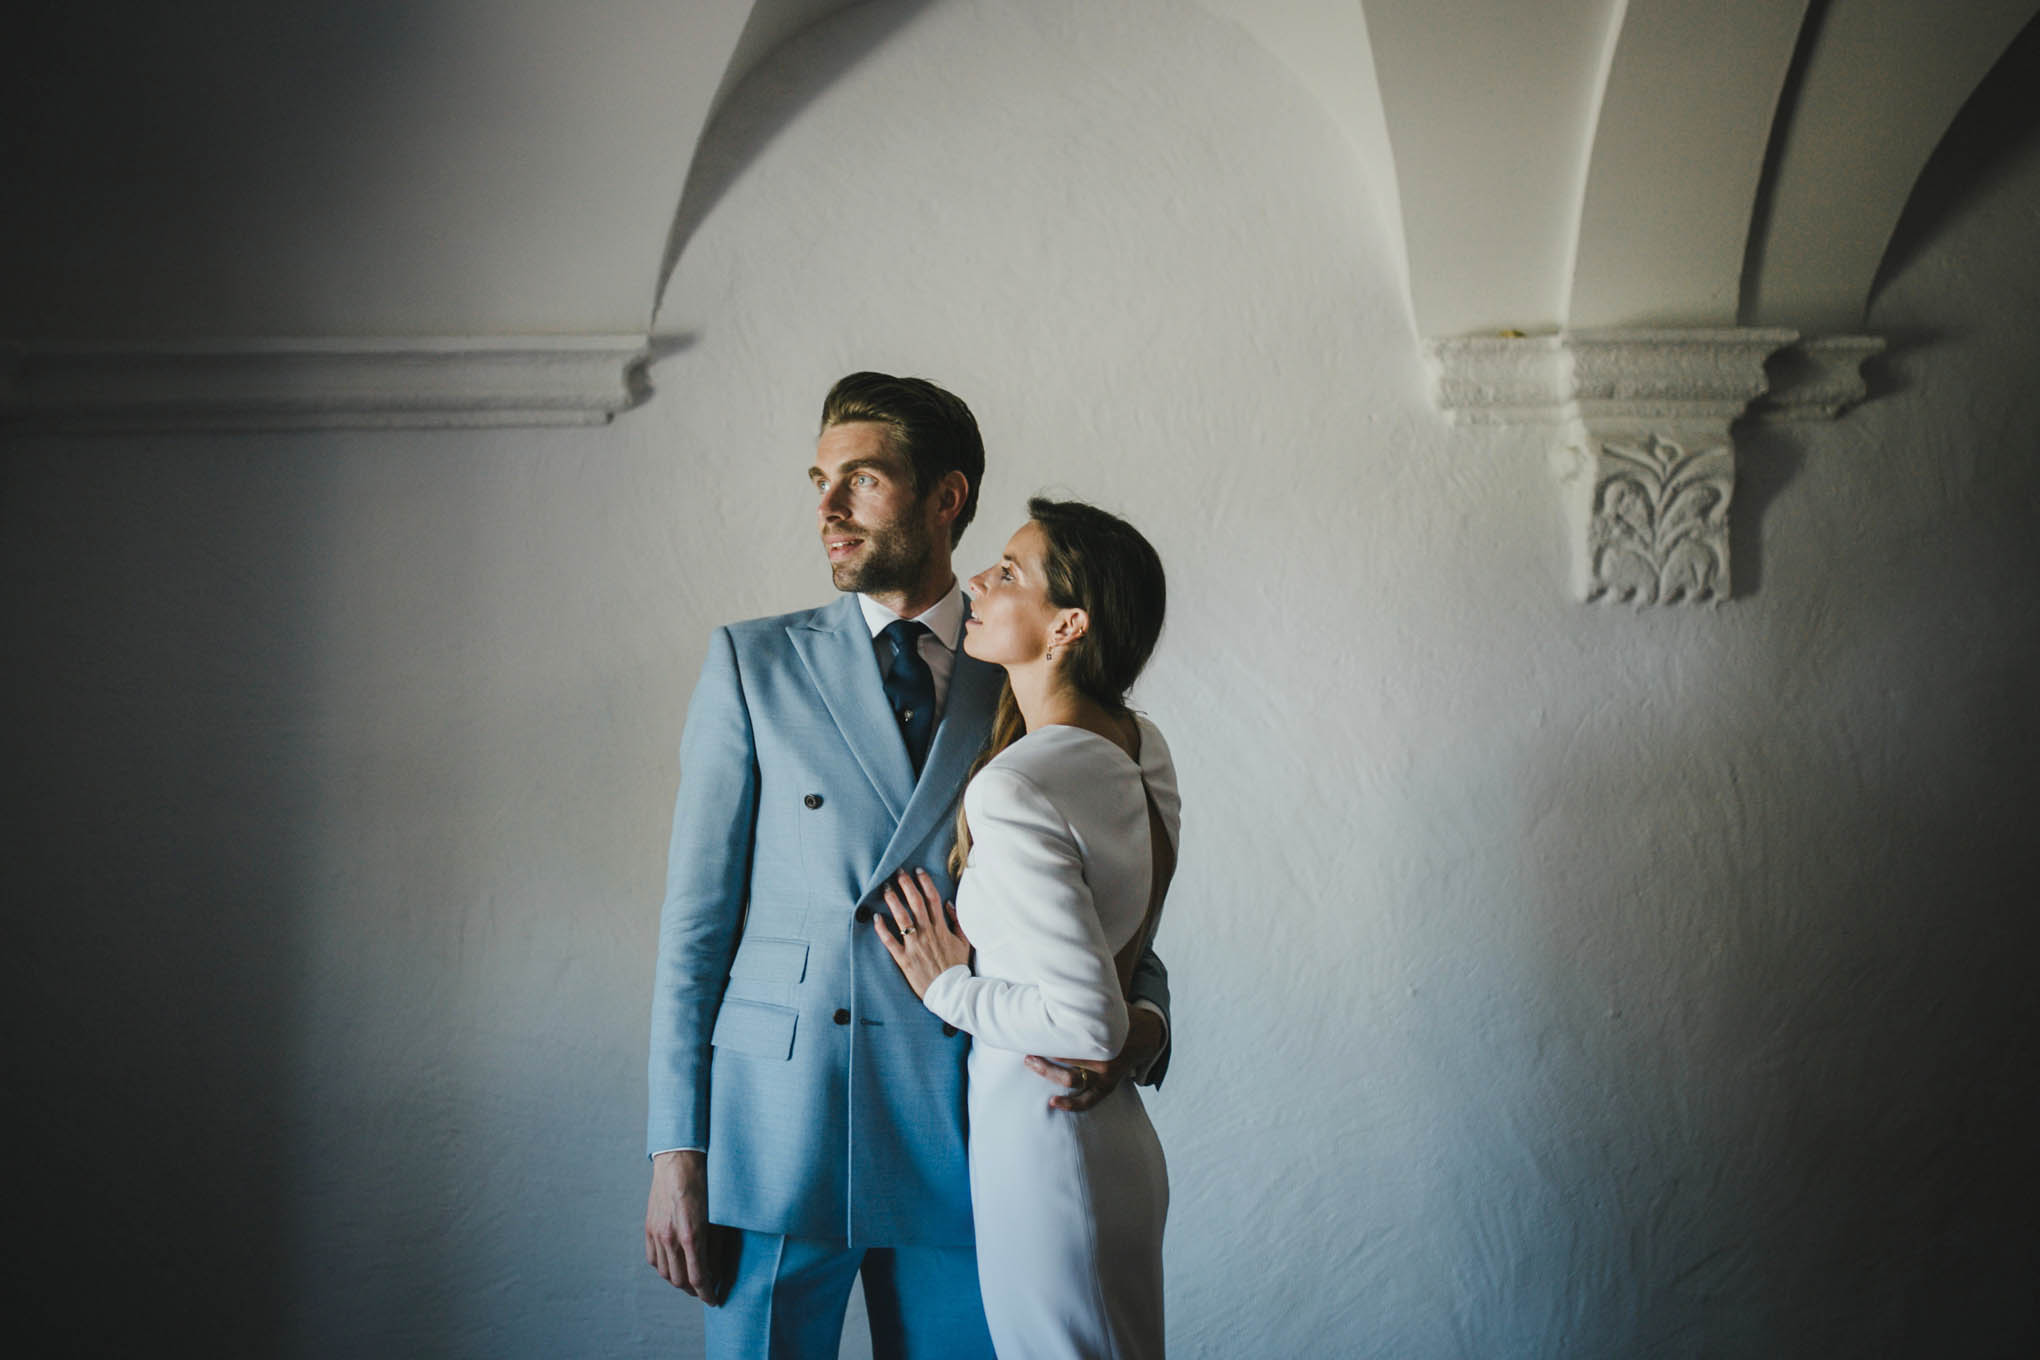 Categories: Weddings-Real Wedding: Rebecca & Will - Photography by Serafin Castillo